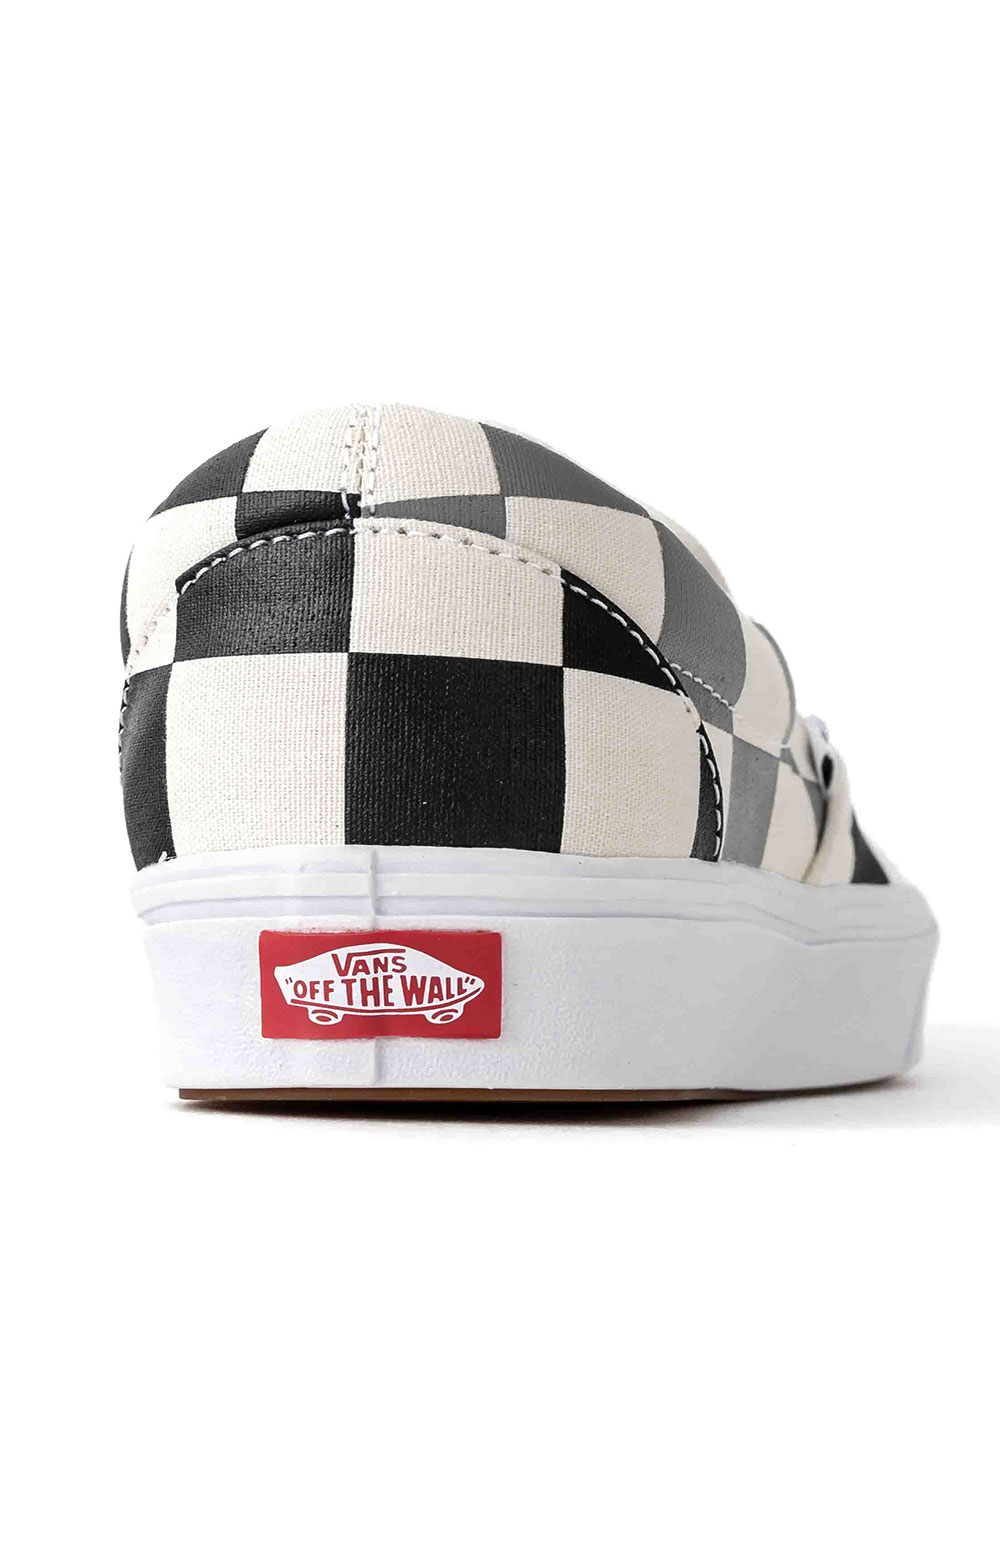 (WMDWXA) Half Big Checker ComfyCush Slip-On Shoe - Black/Grey 2